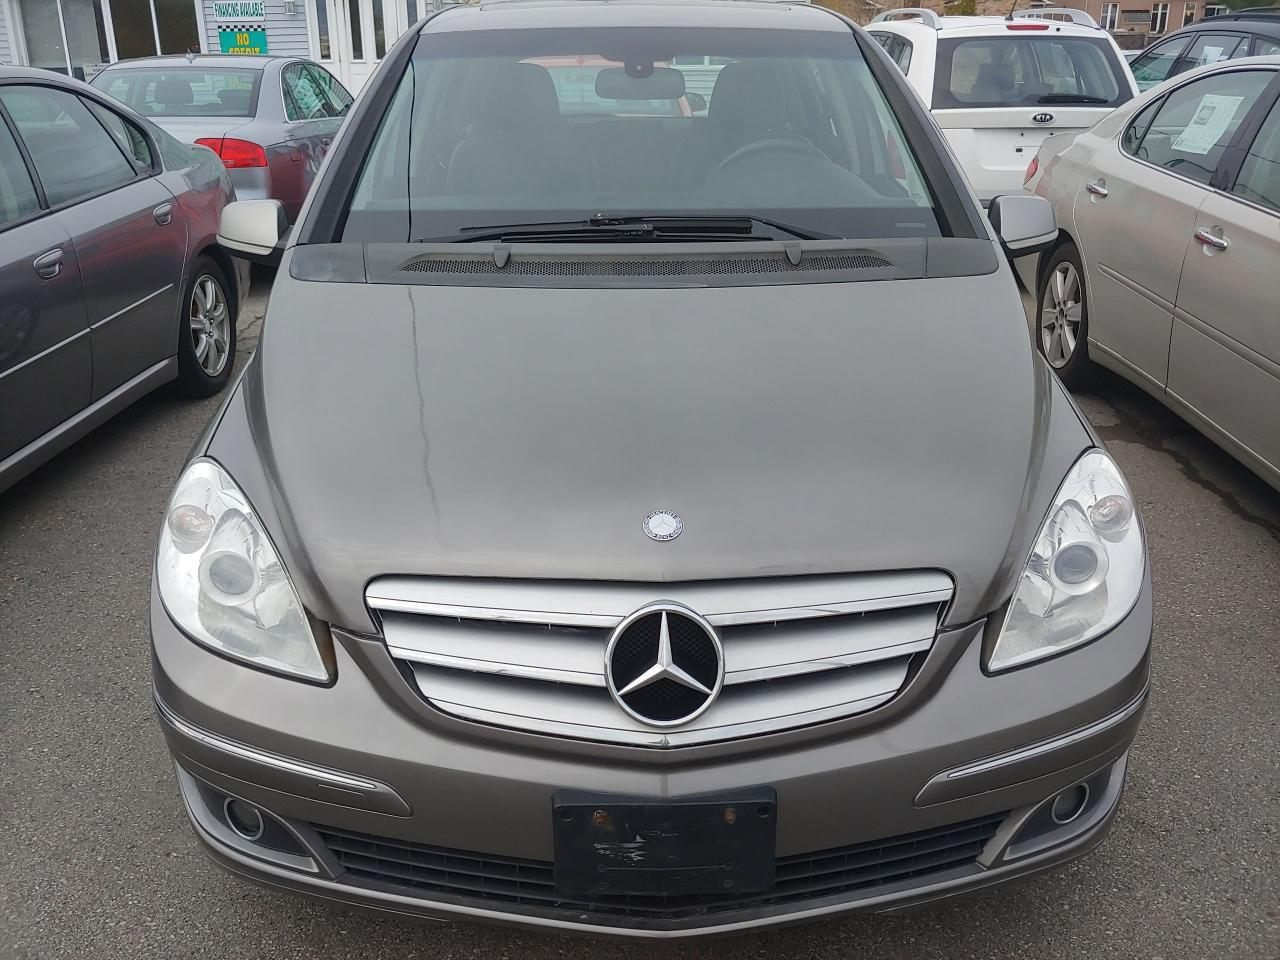 used 2007 mercedes benz b200 turbo for sale in oshawa. Black Bedroom Furniture Sets. Home Design Ideas